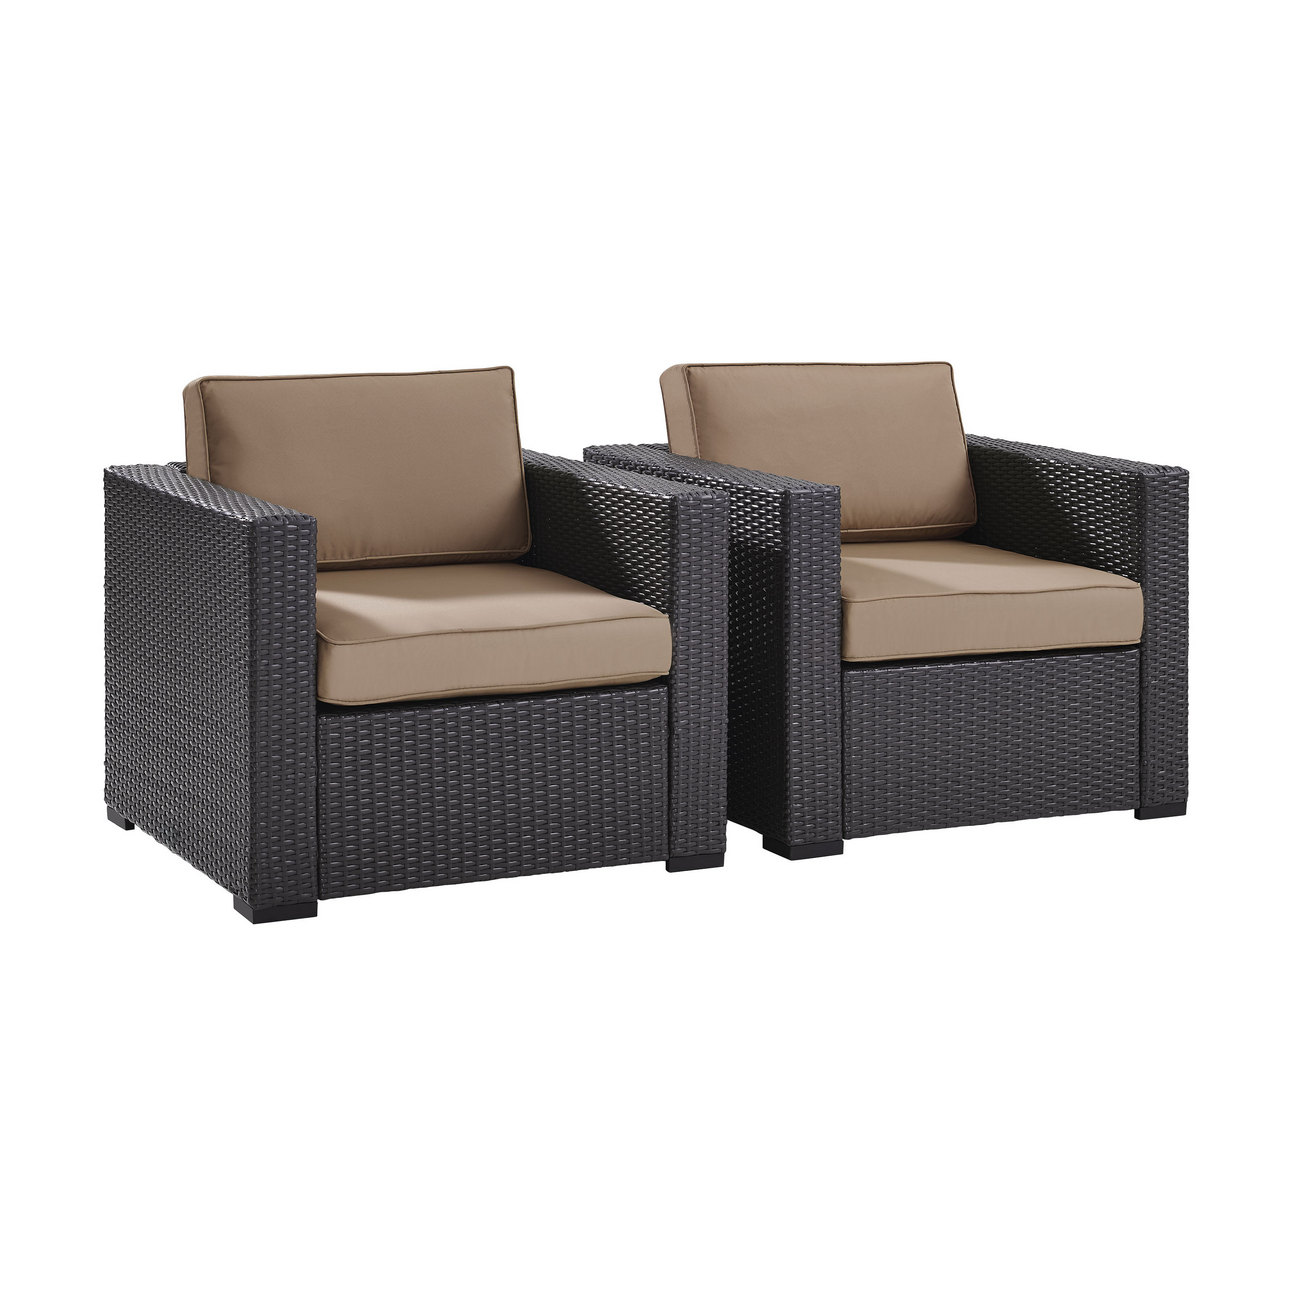 Biscayne 2 Person Outdoor Wicker Seating Set in Mocha - Two Outdoor Wicker Chairs - Crosley KO70103BR-MO